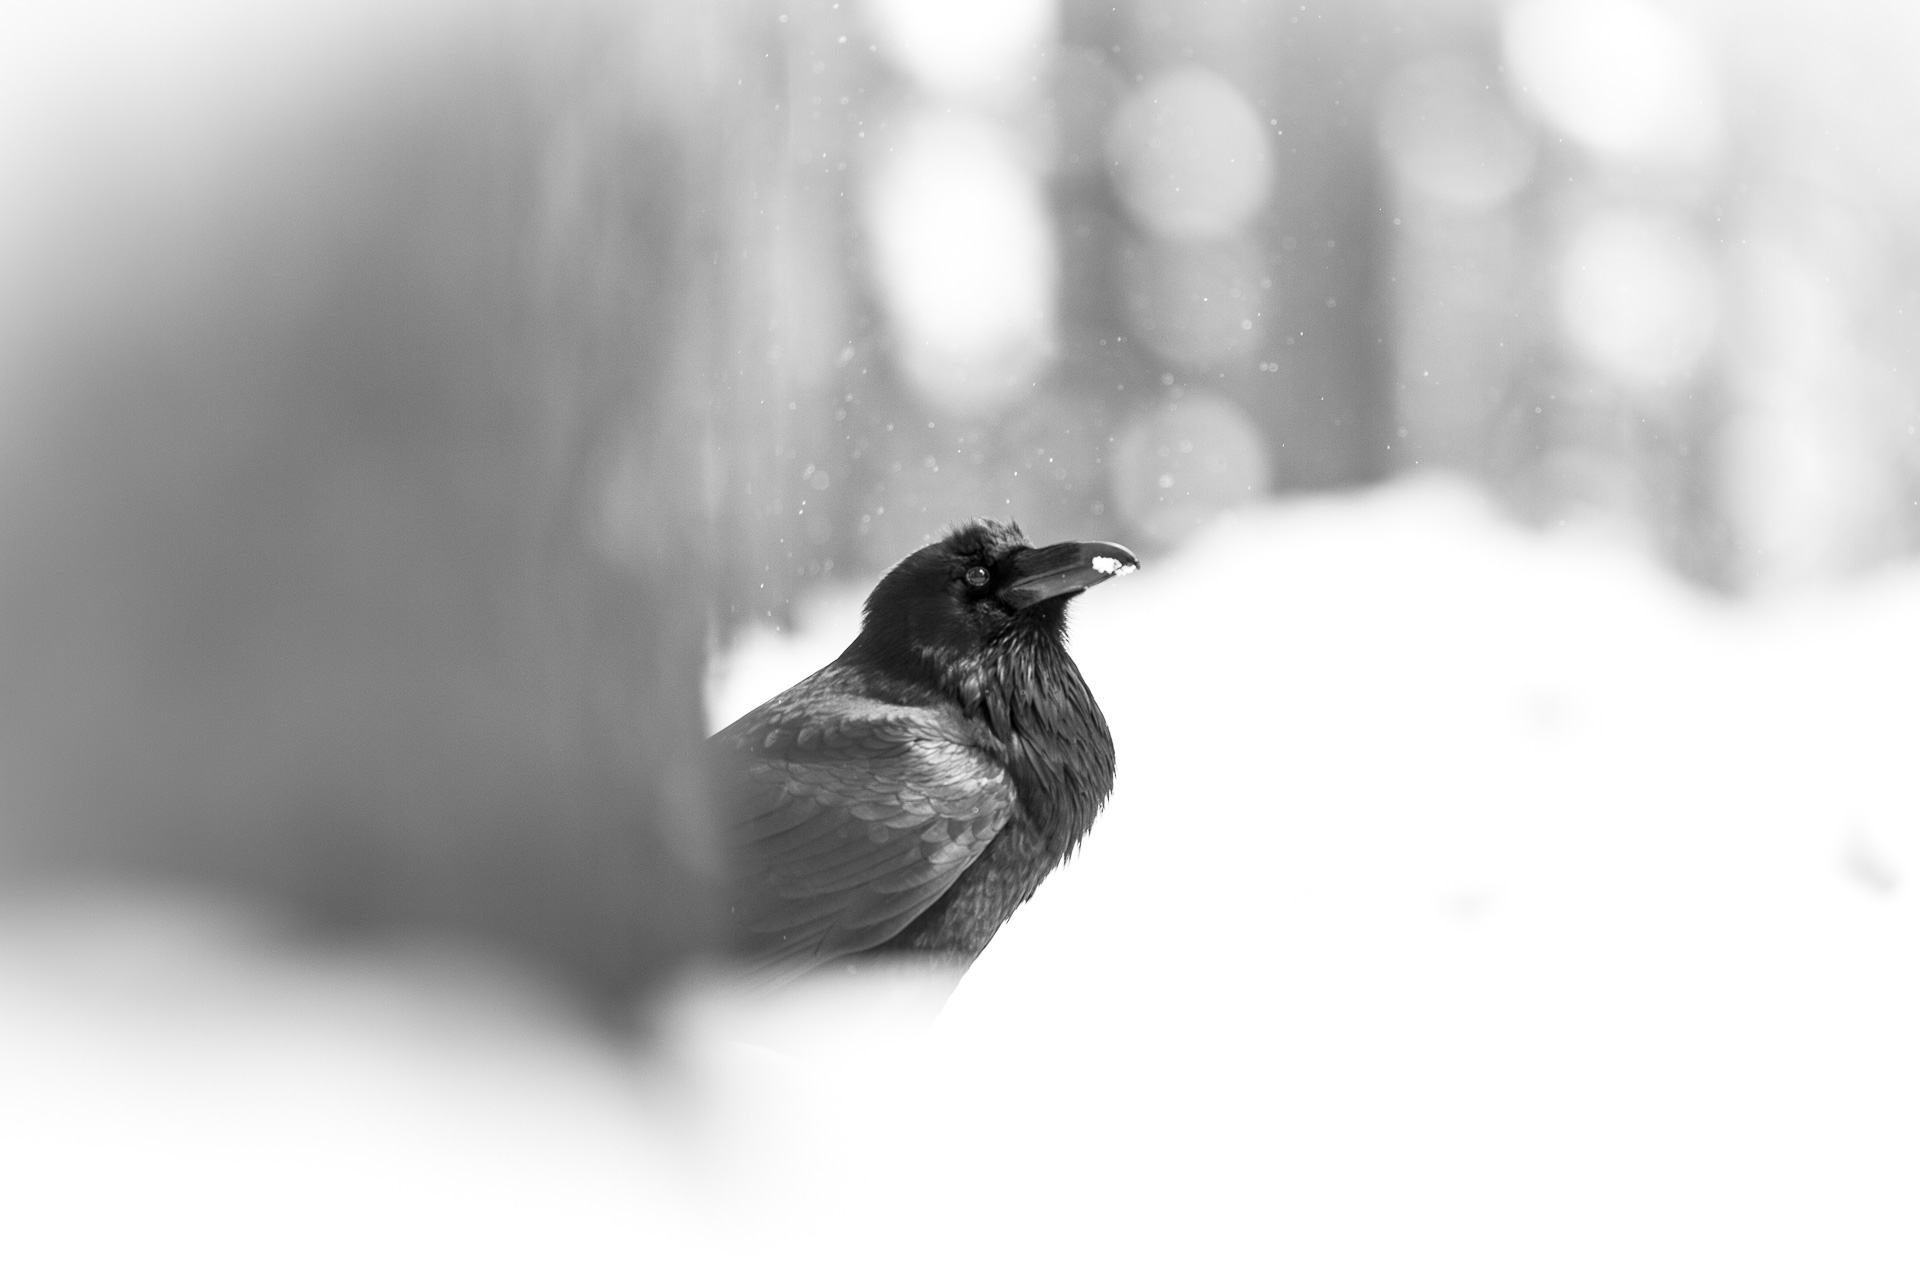 Common Raven snow falling black and white Canon 200mm f2 lens Yellowstone National Park WY Sparky Stensaas-0335